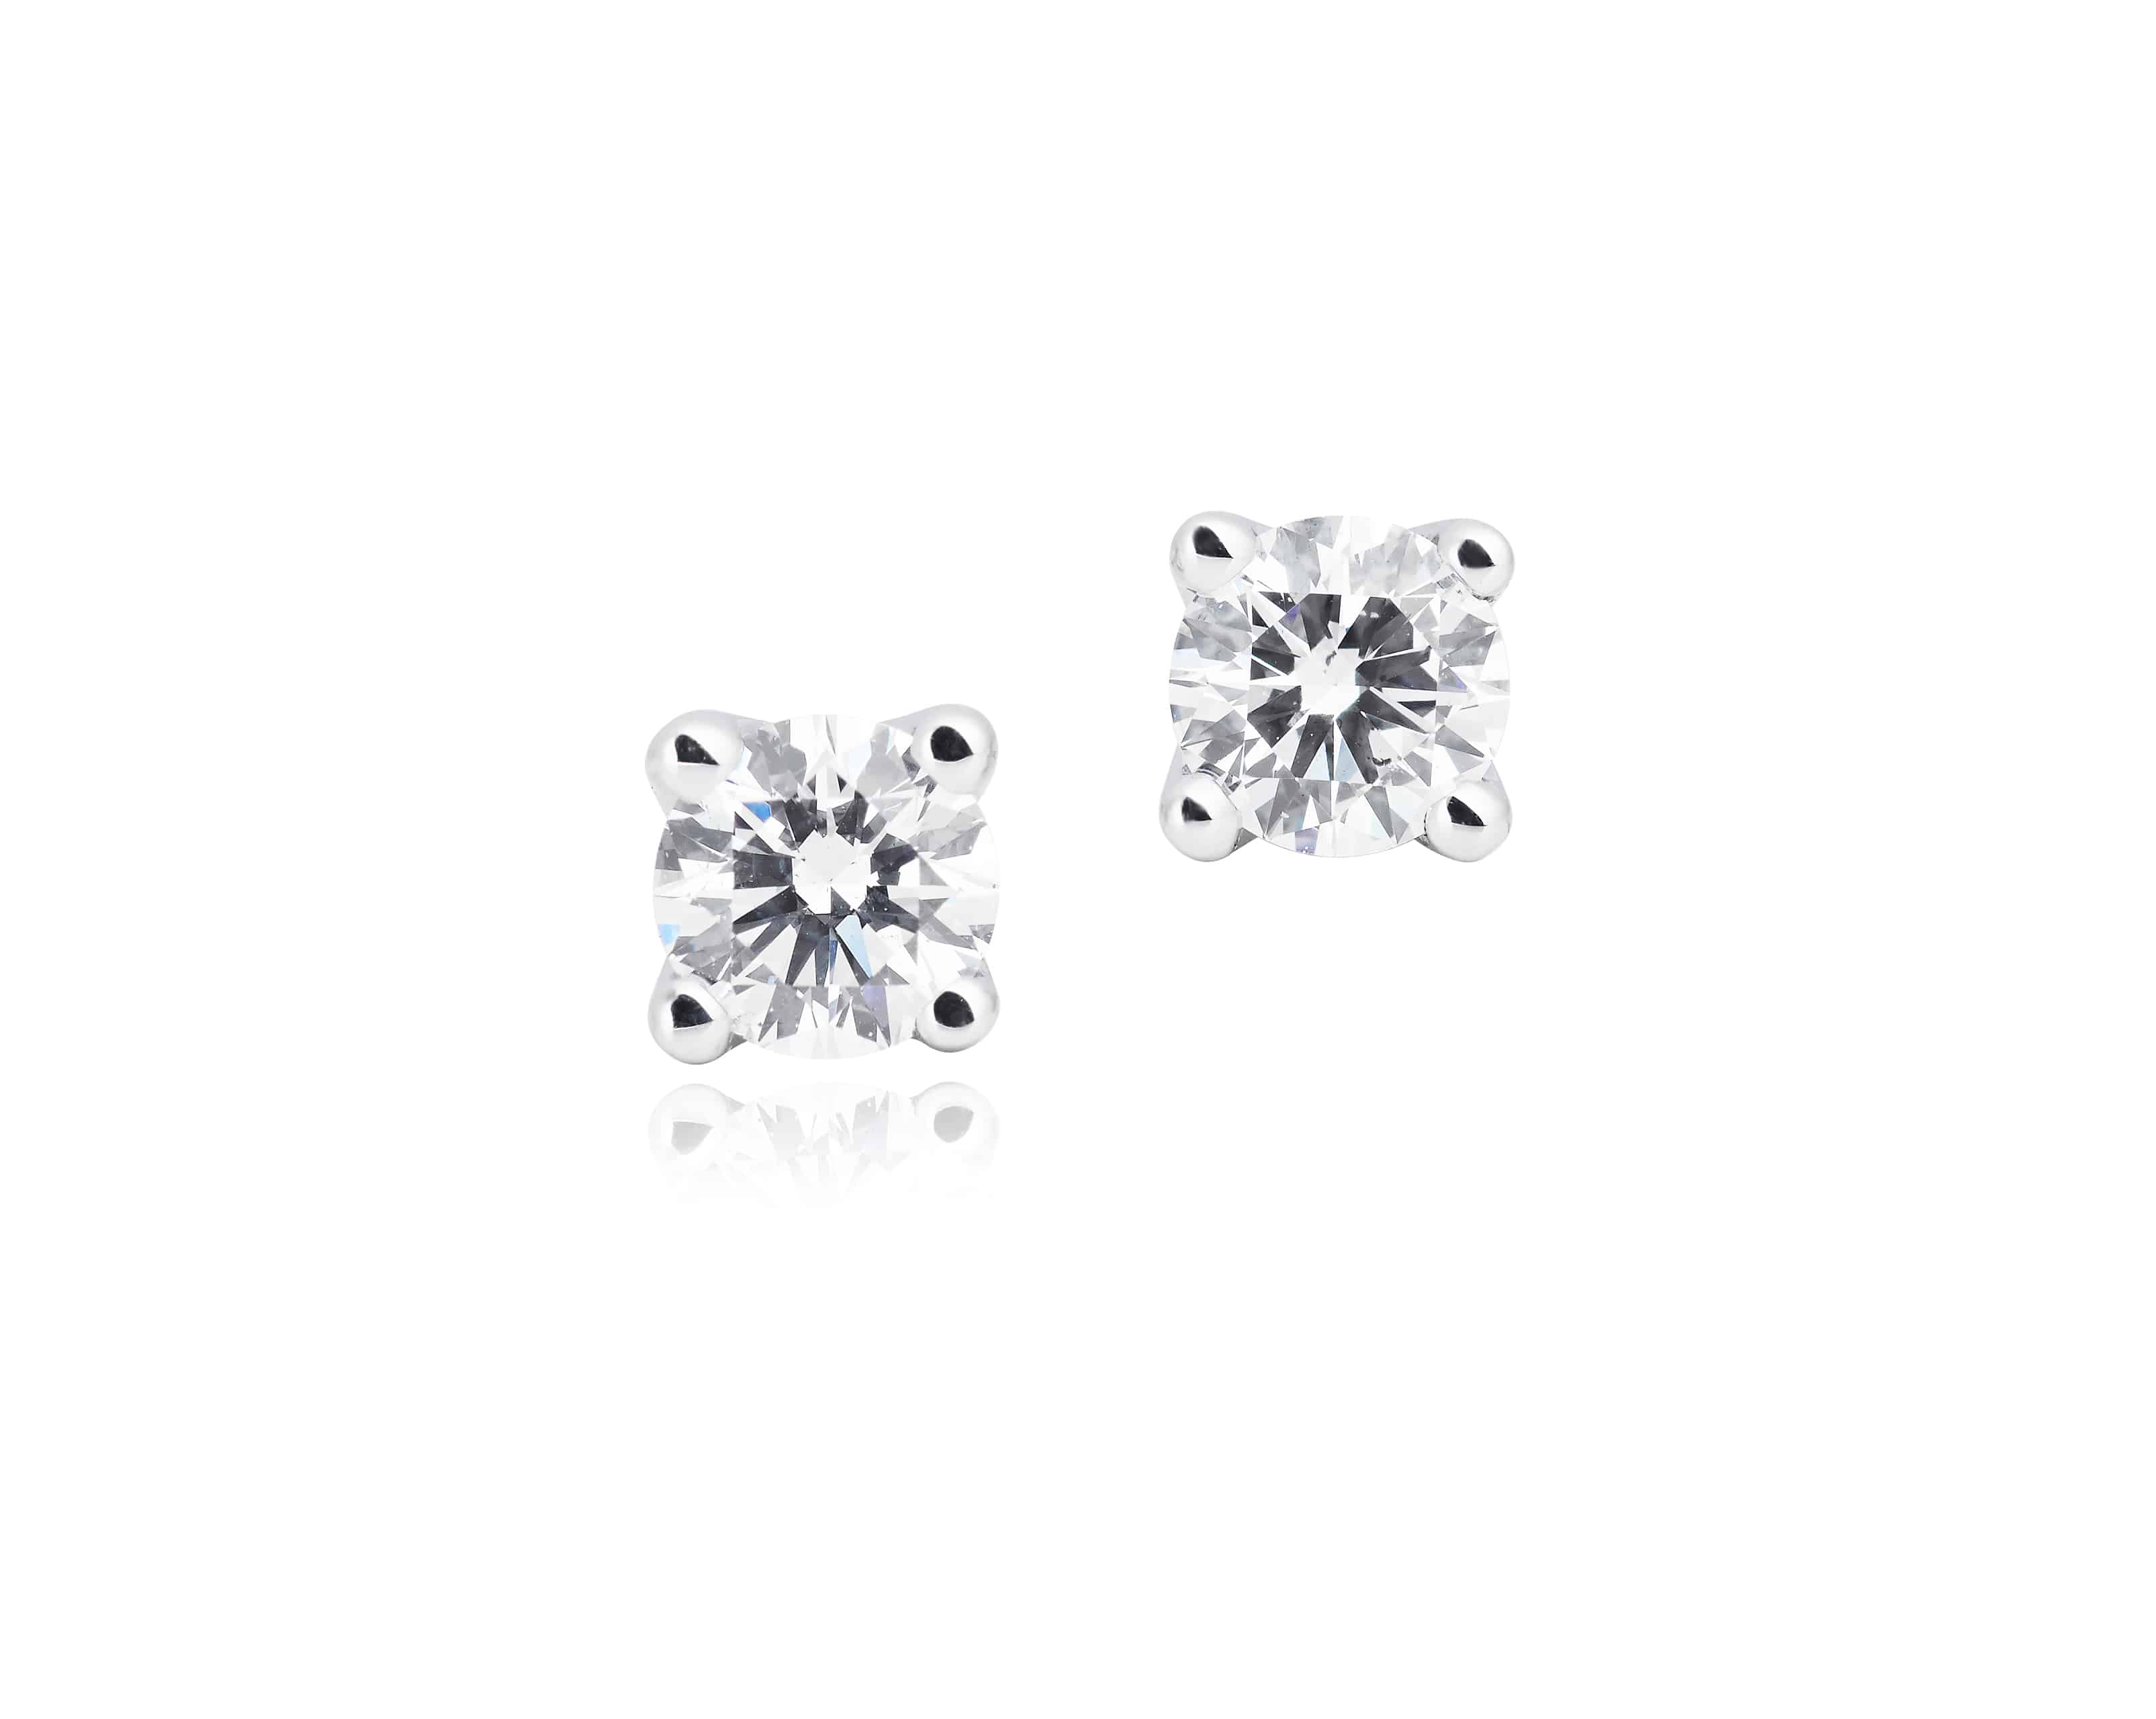 Diamond Four Claw Stud Earrings with Enhancer Halos